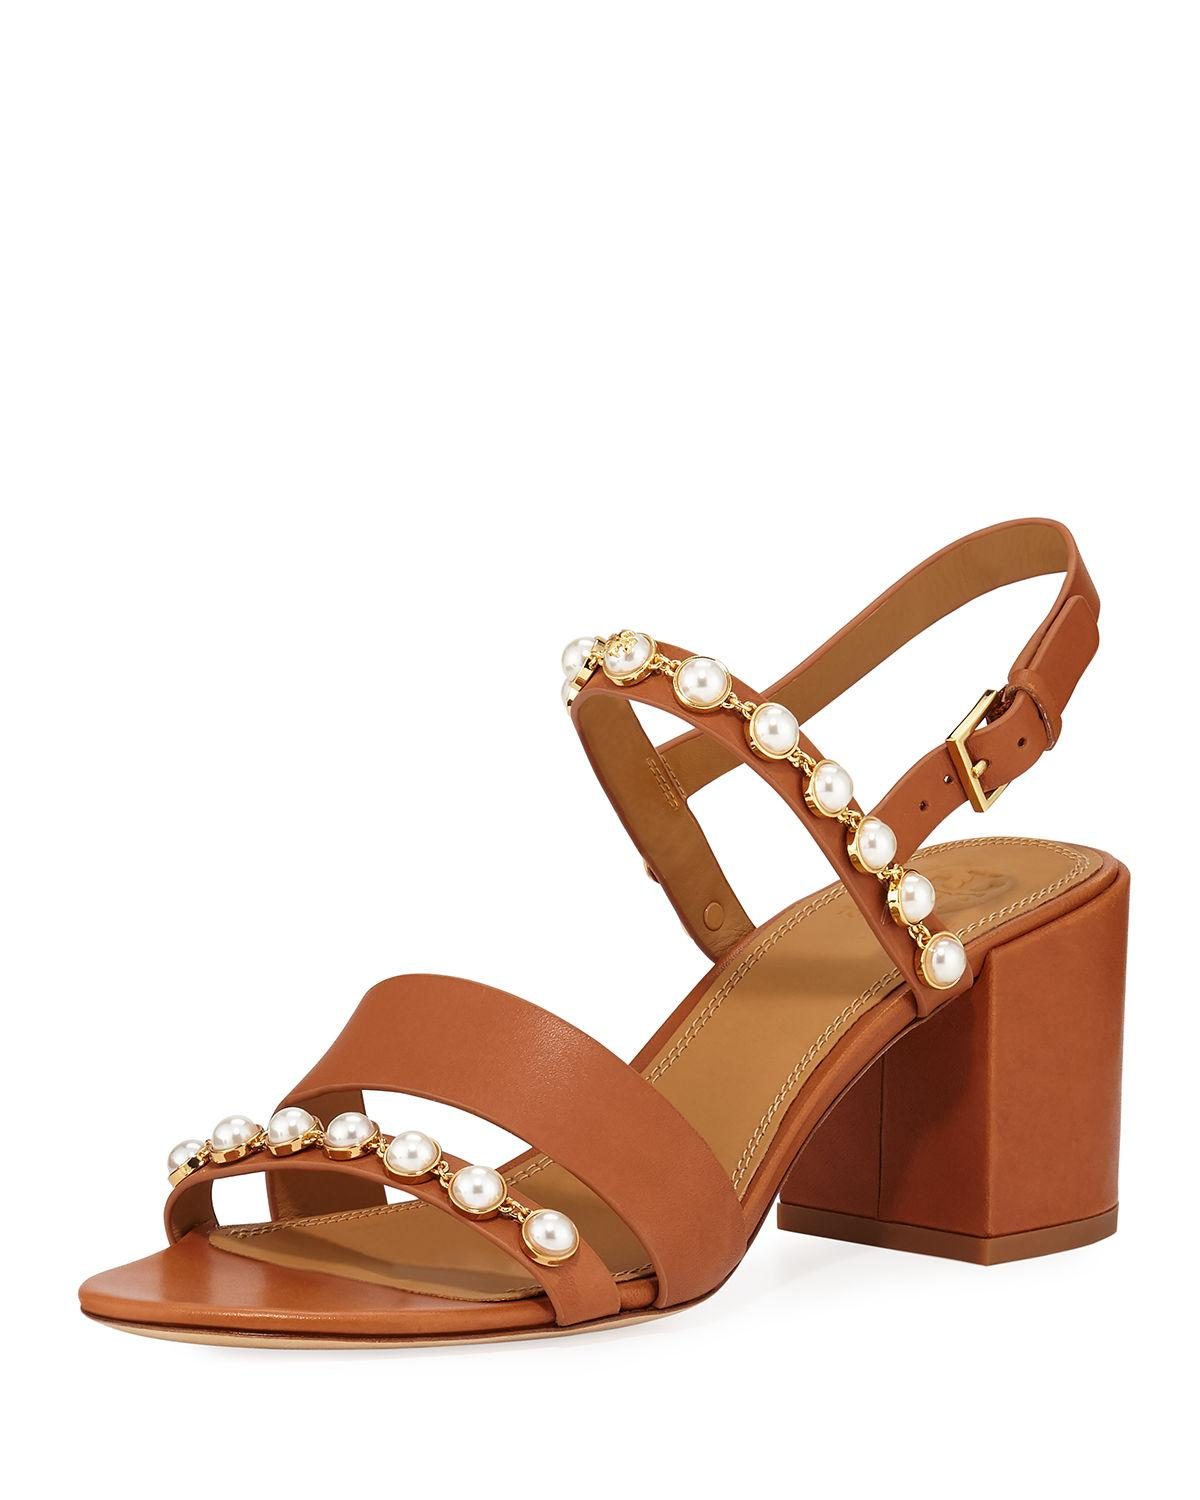 687feef2098f Lyst - Tory Burch Emmy Pearly Studded Block-heel Sandals in Brown